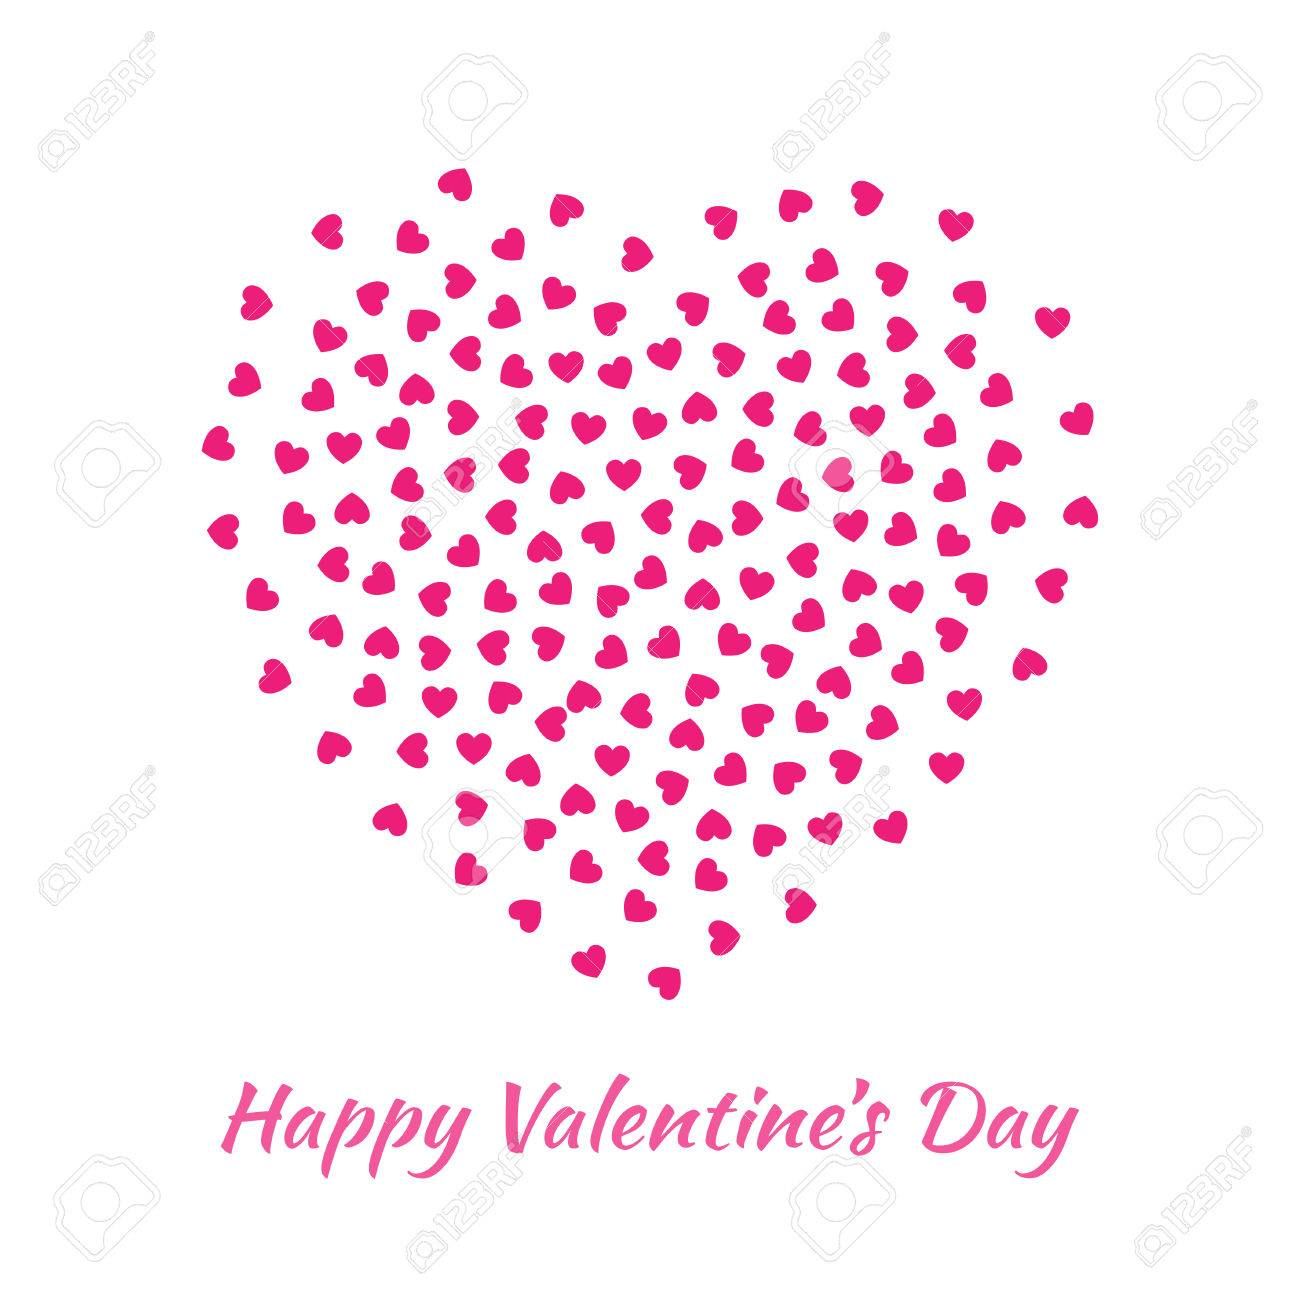 Abstract Vector Elegant Heart With Small Pink Hearts For Valentines ...